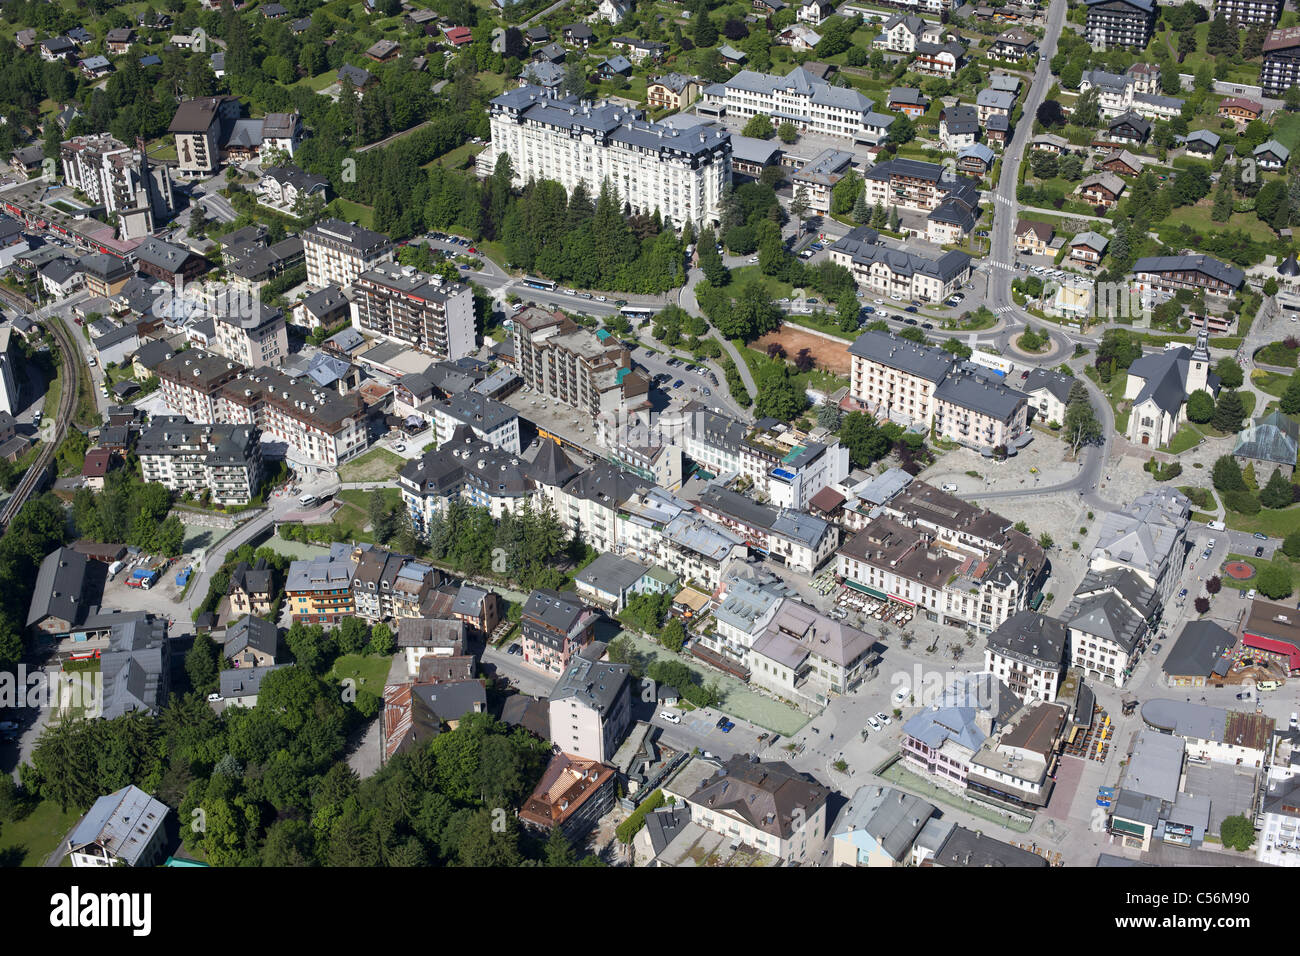 CHAMONIX MONT-BLANC (aerial view). The city center. Haute-Savoie, Rhône-Alpes, France. - Stock Image